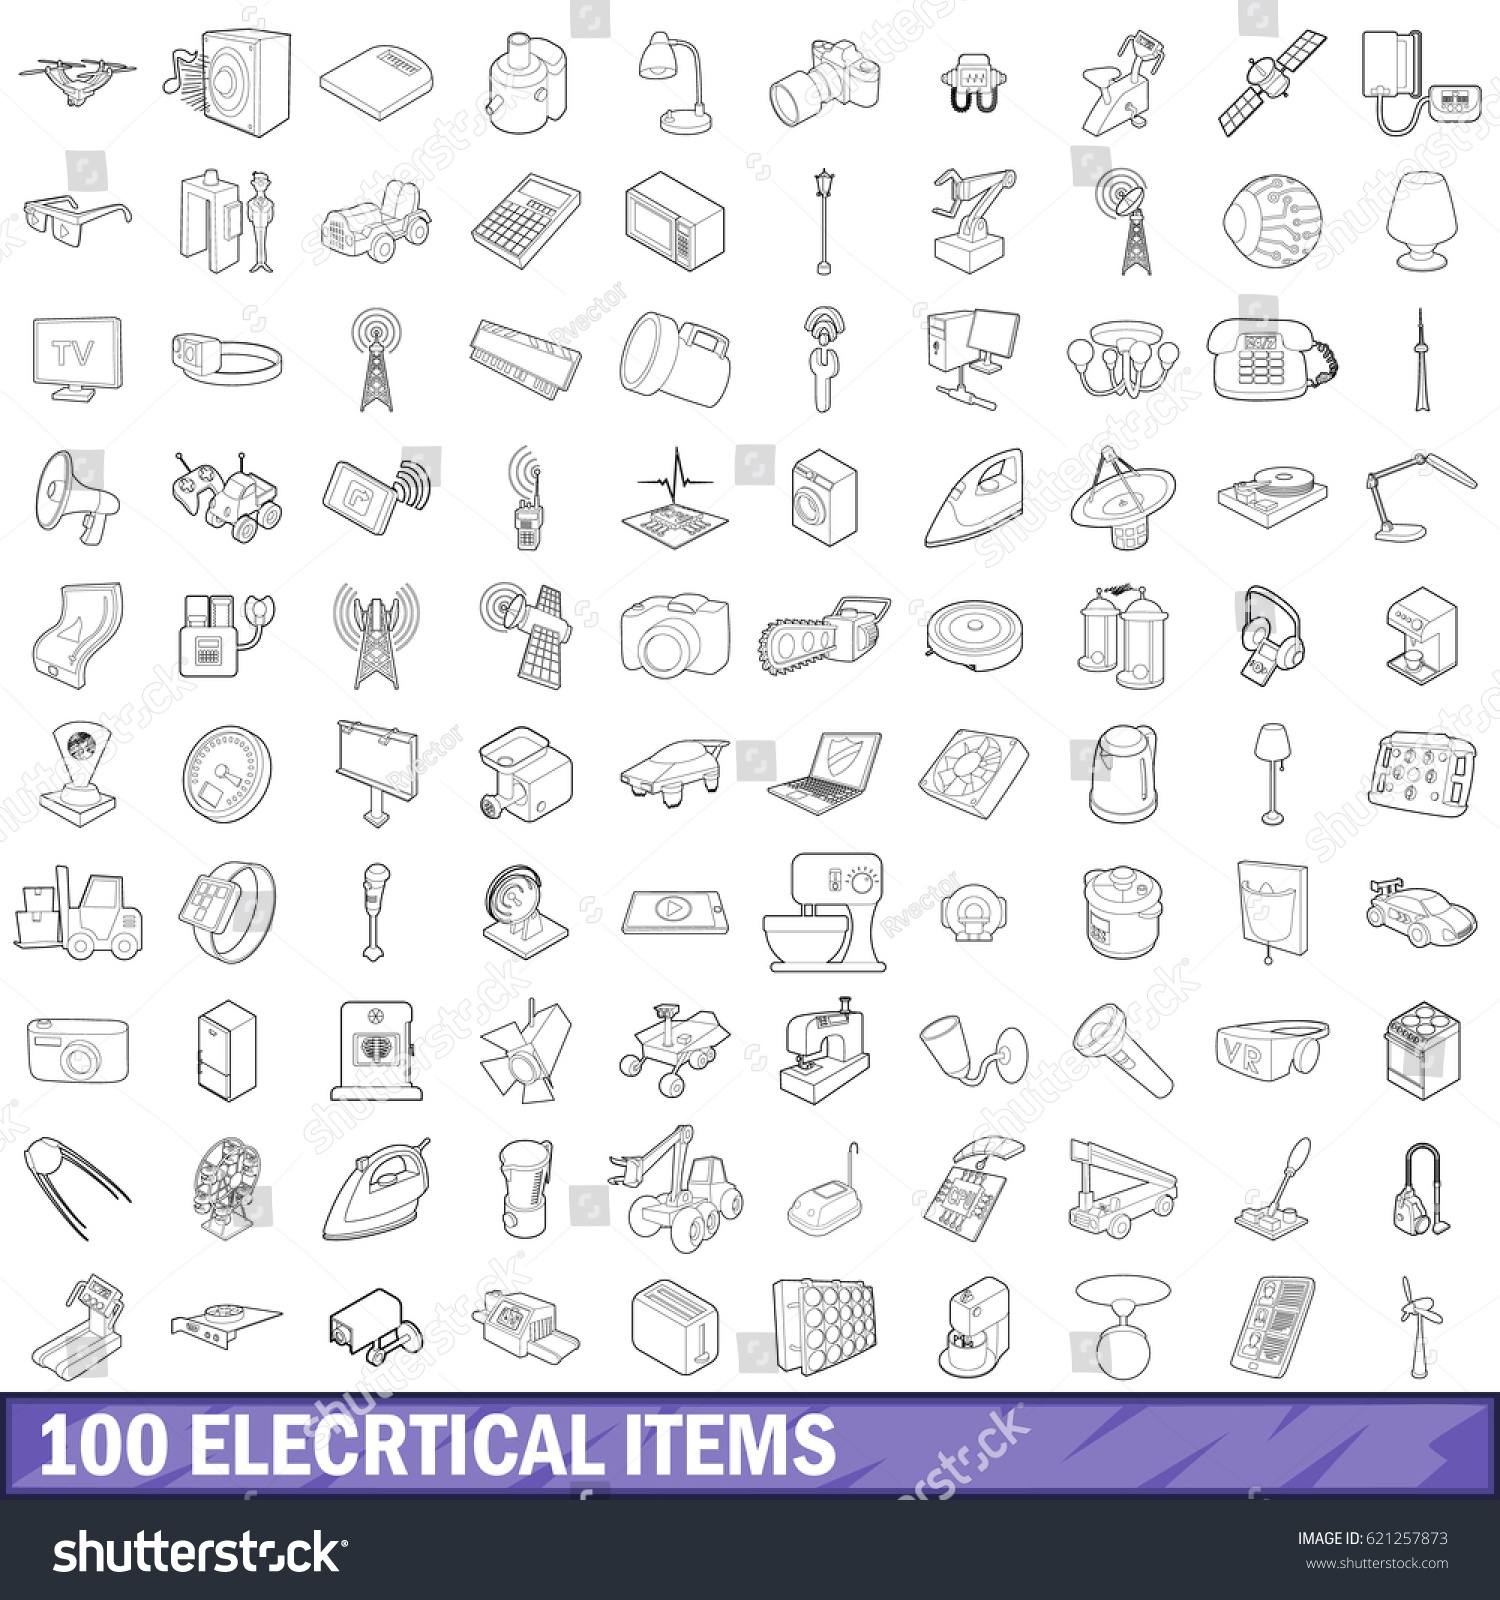 100 Electrical Items Icons Set In Outline Style For Any Design Illustration